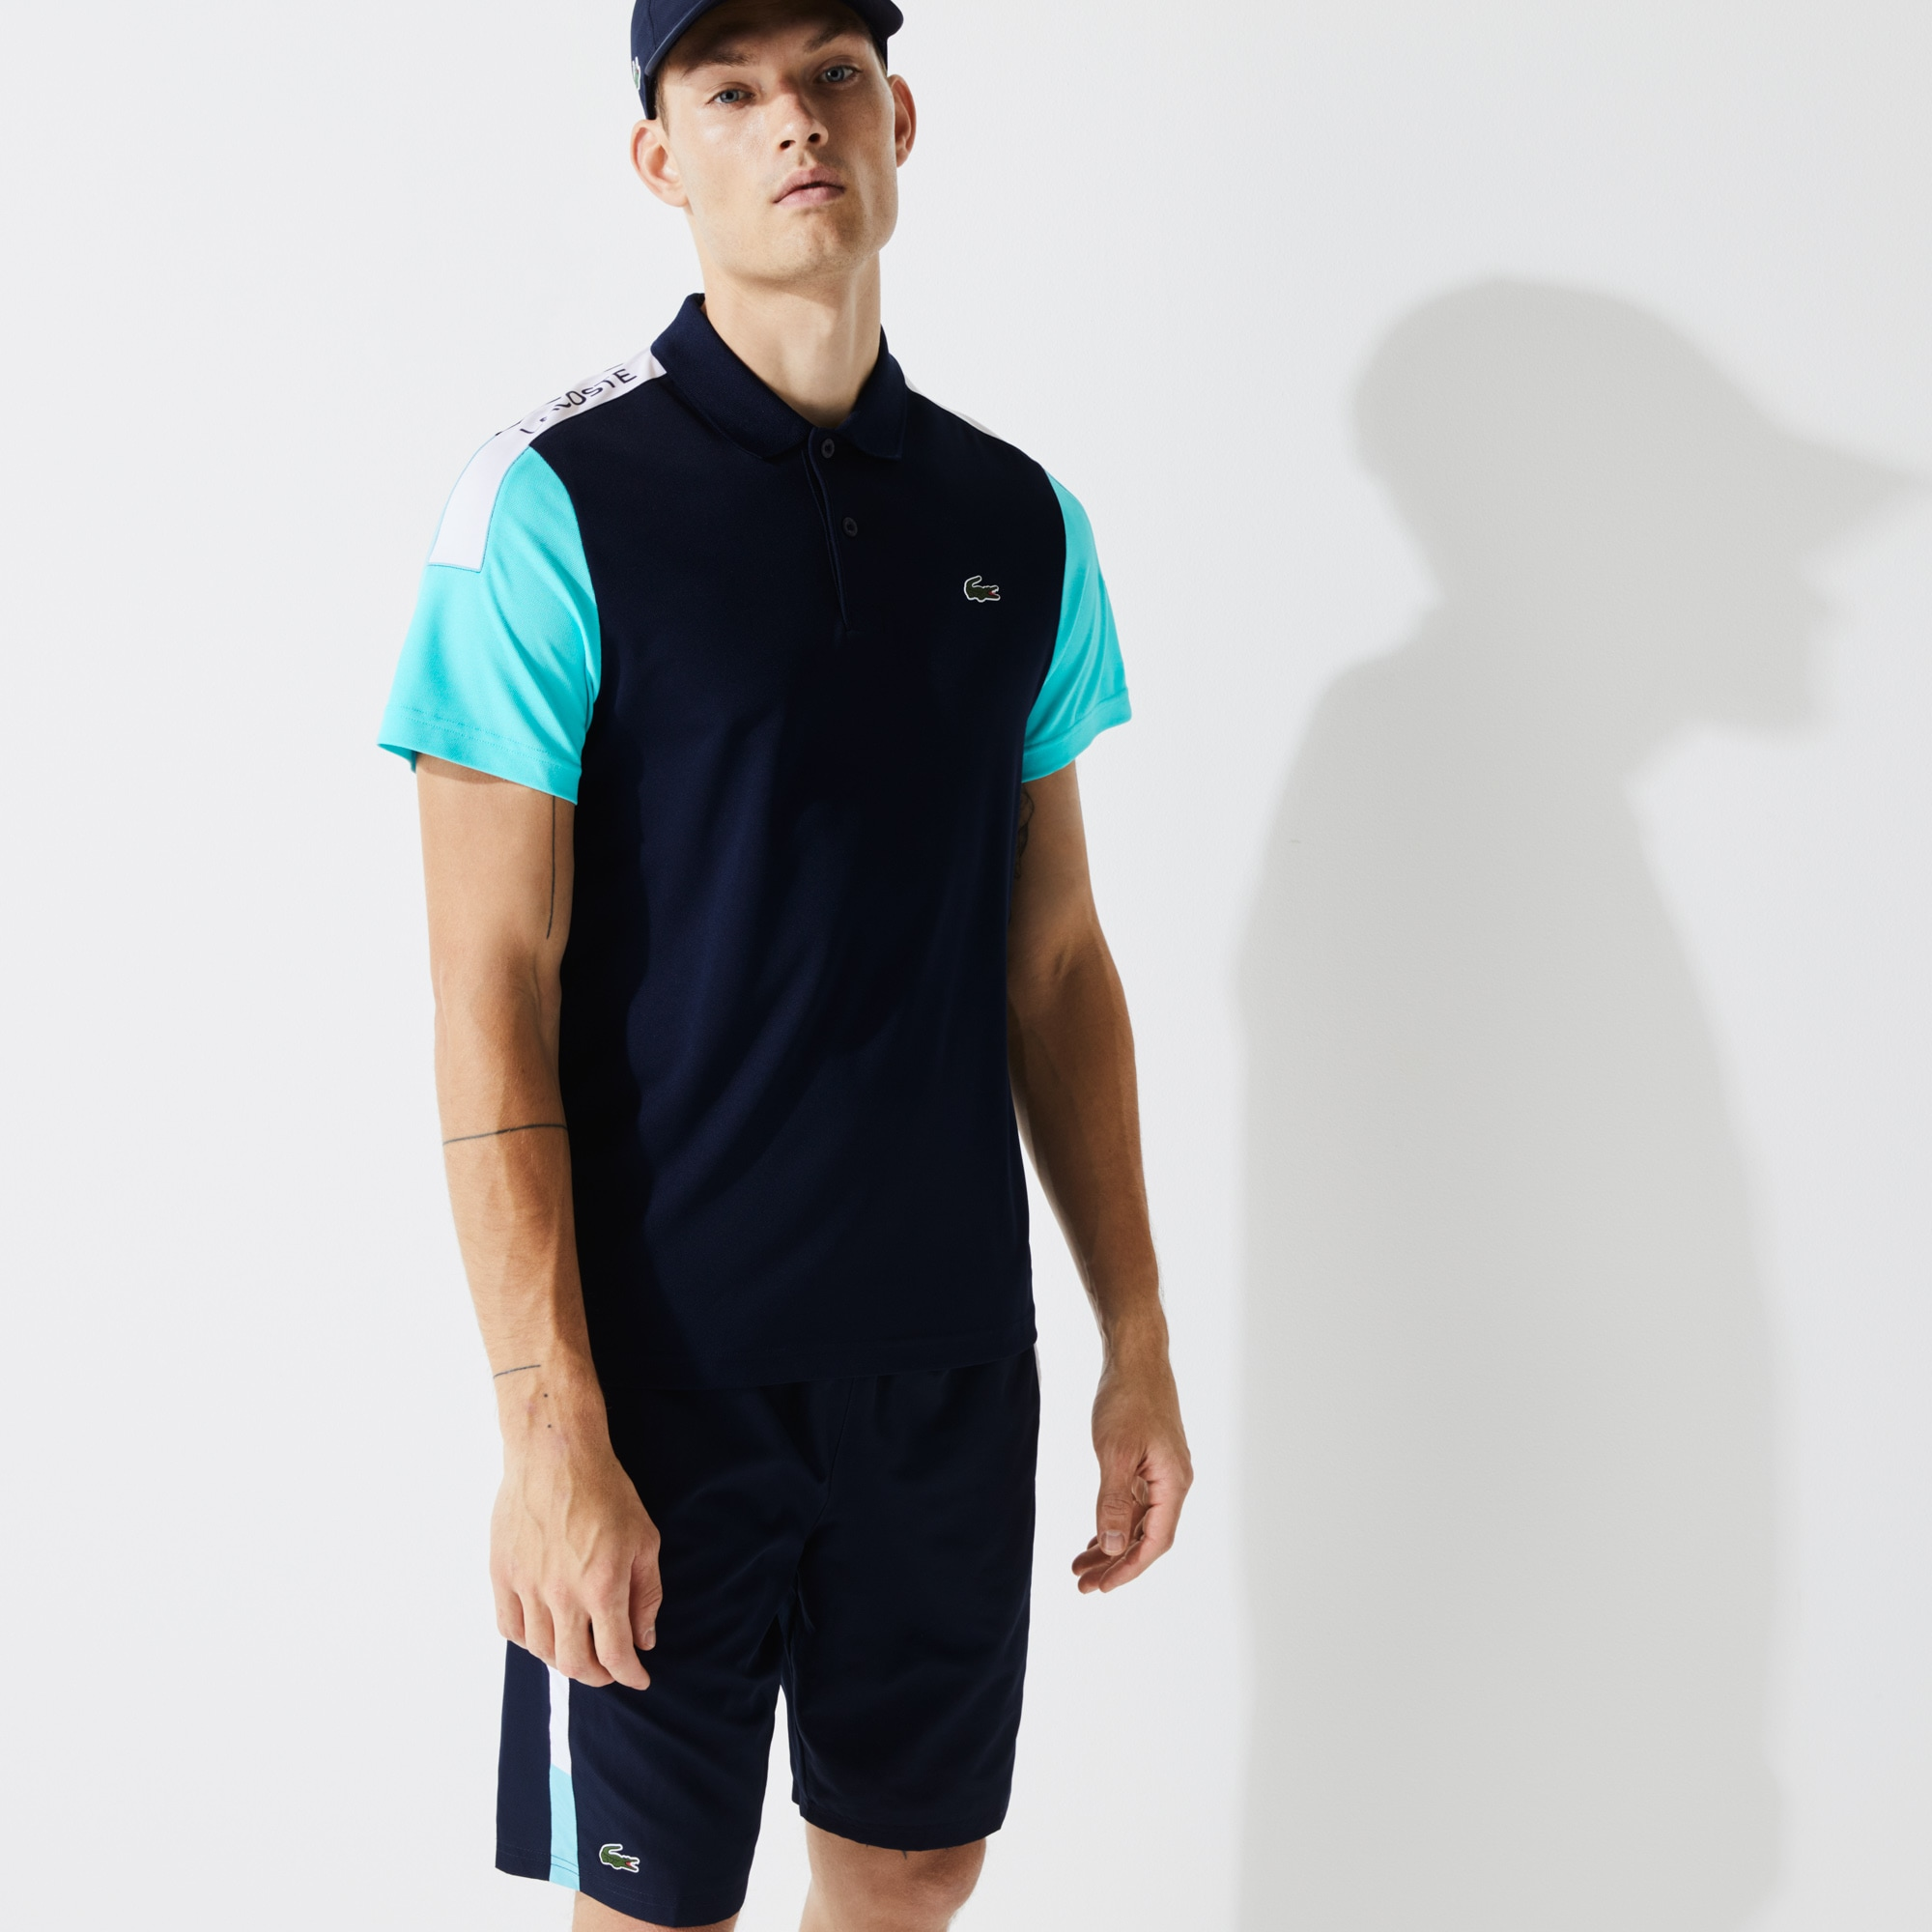 라코스테 스포츠 Lacoste Mens SPORT Breathable Resistant Pique Polo Shirt,Navy Blue / Turquoise / White - 2YE (Selected colo